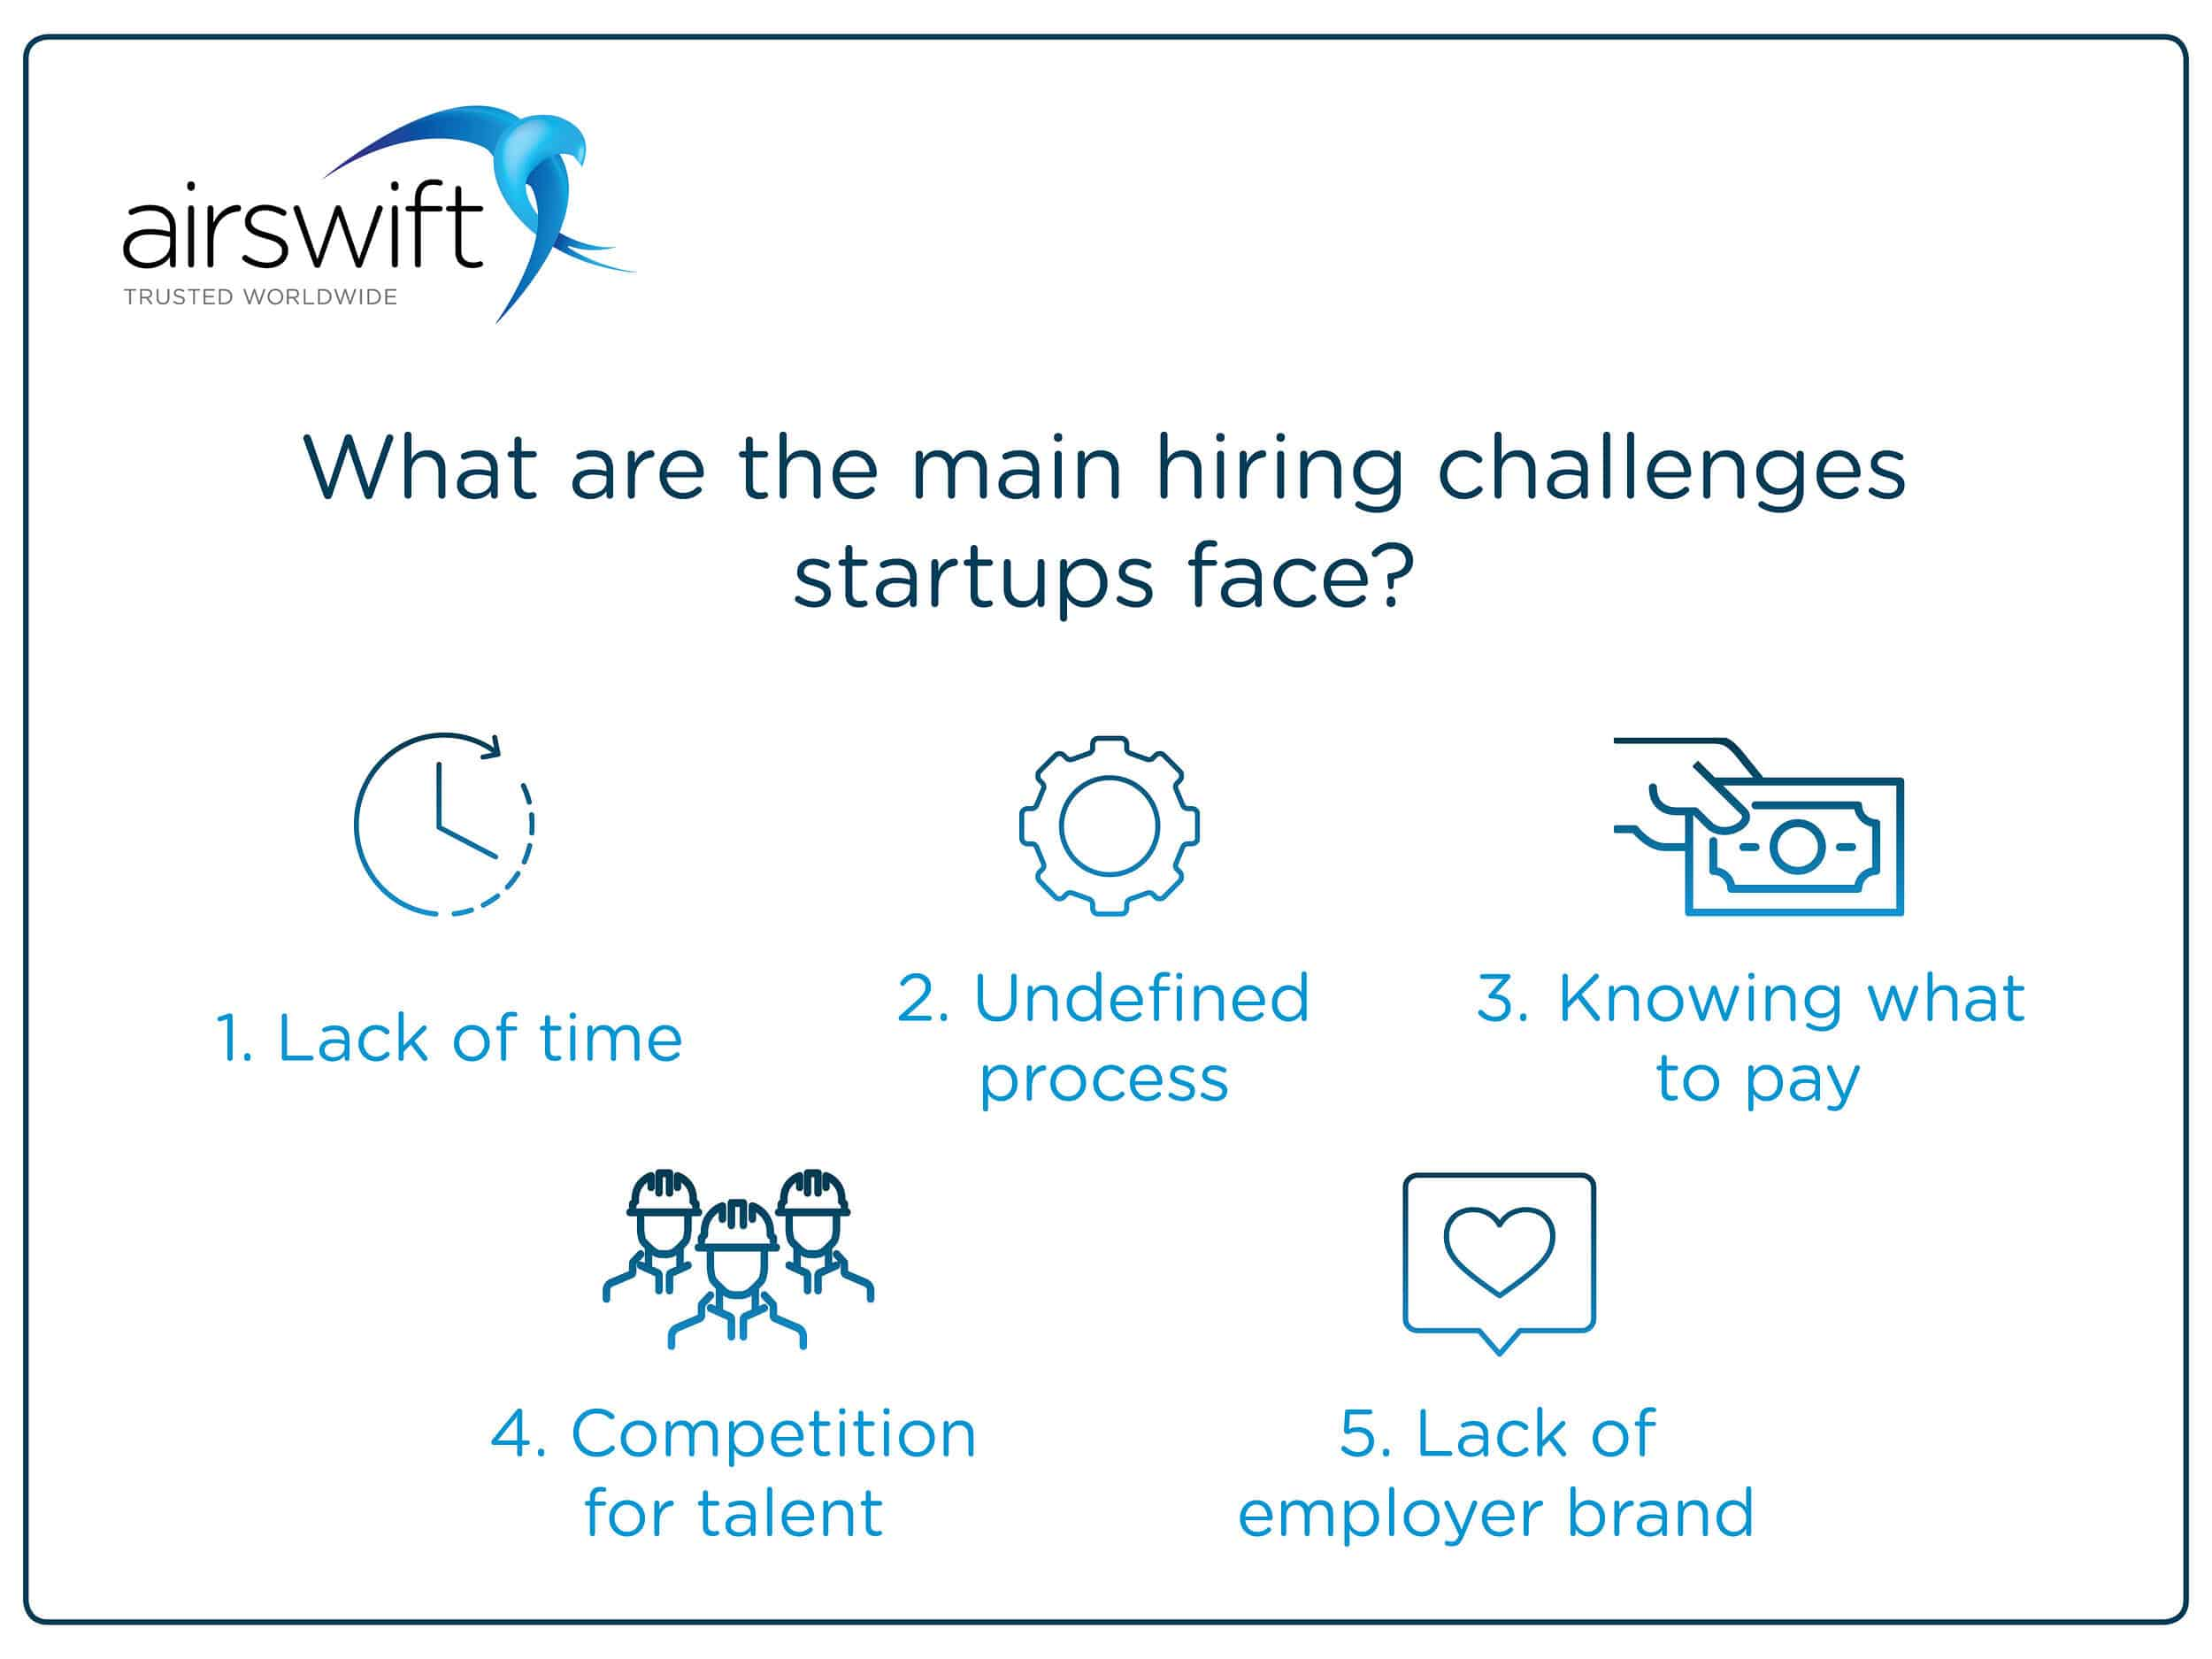 Startup hiring challenges